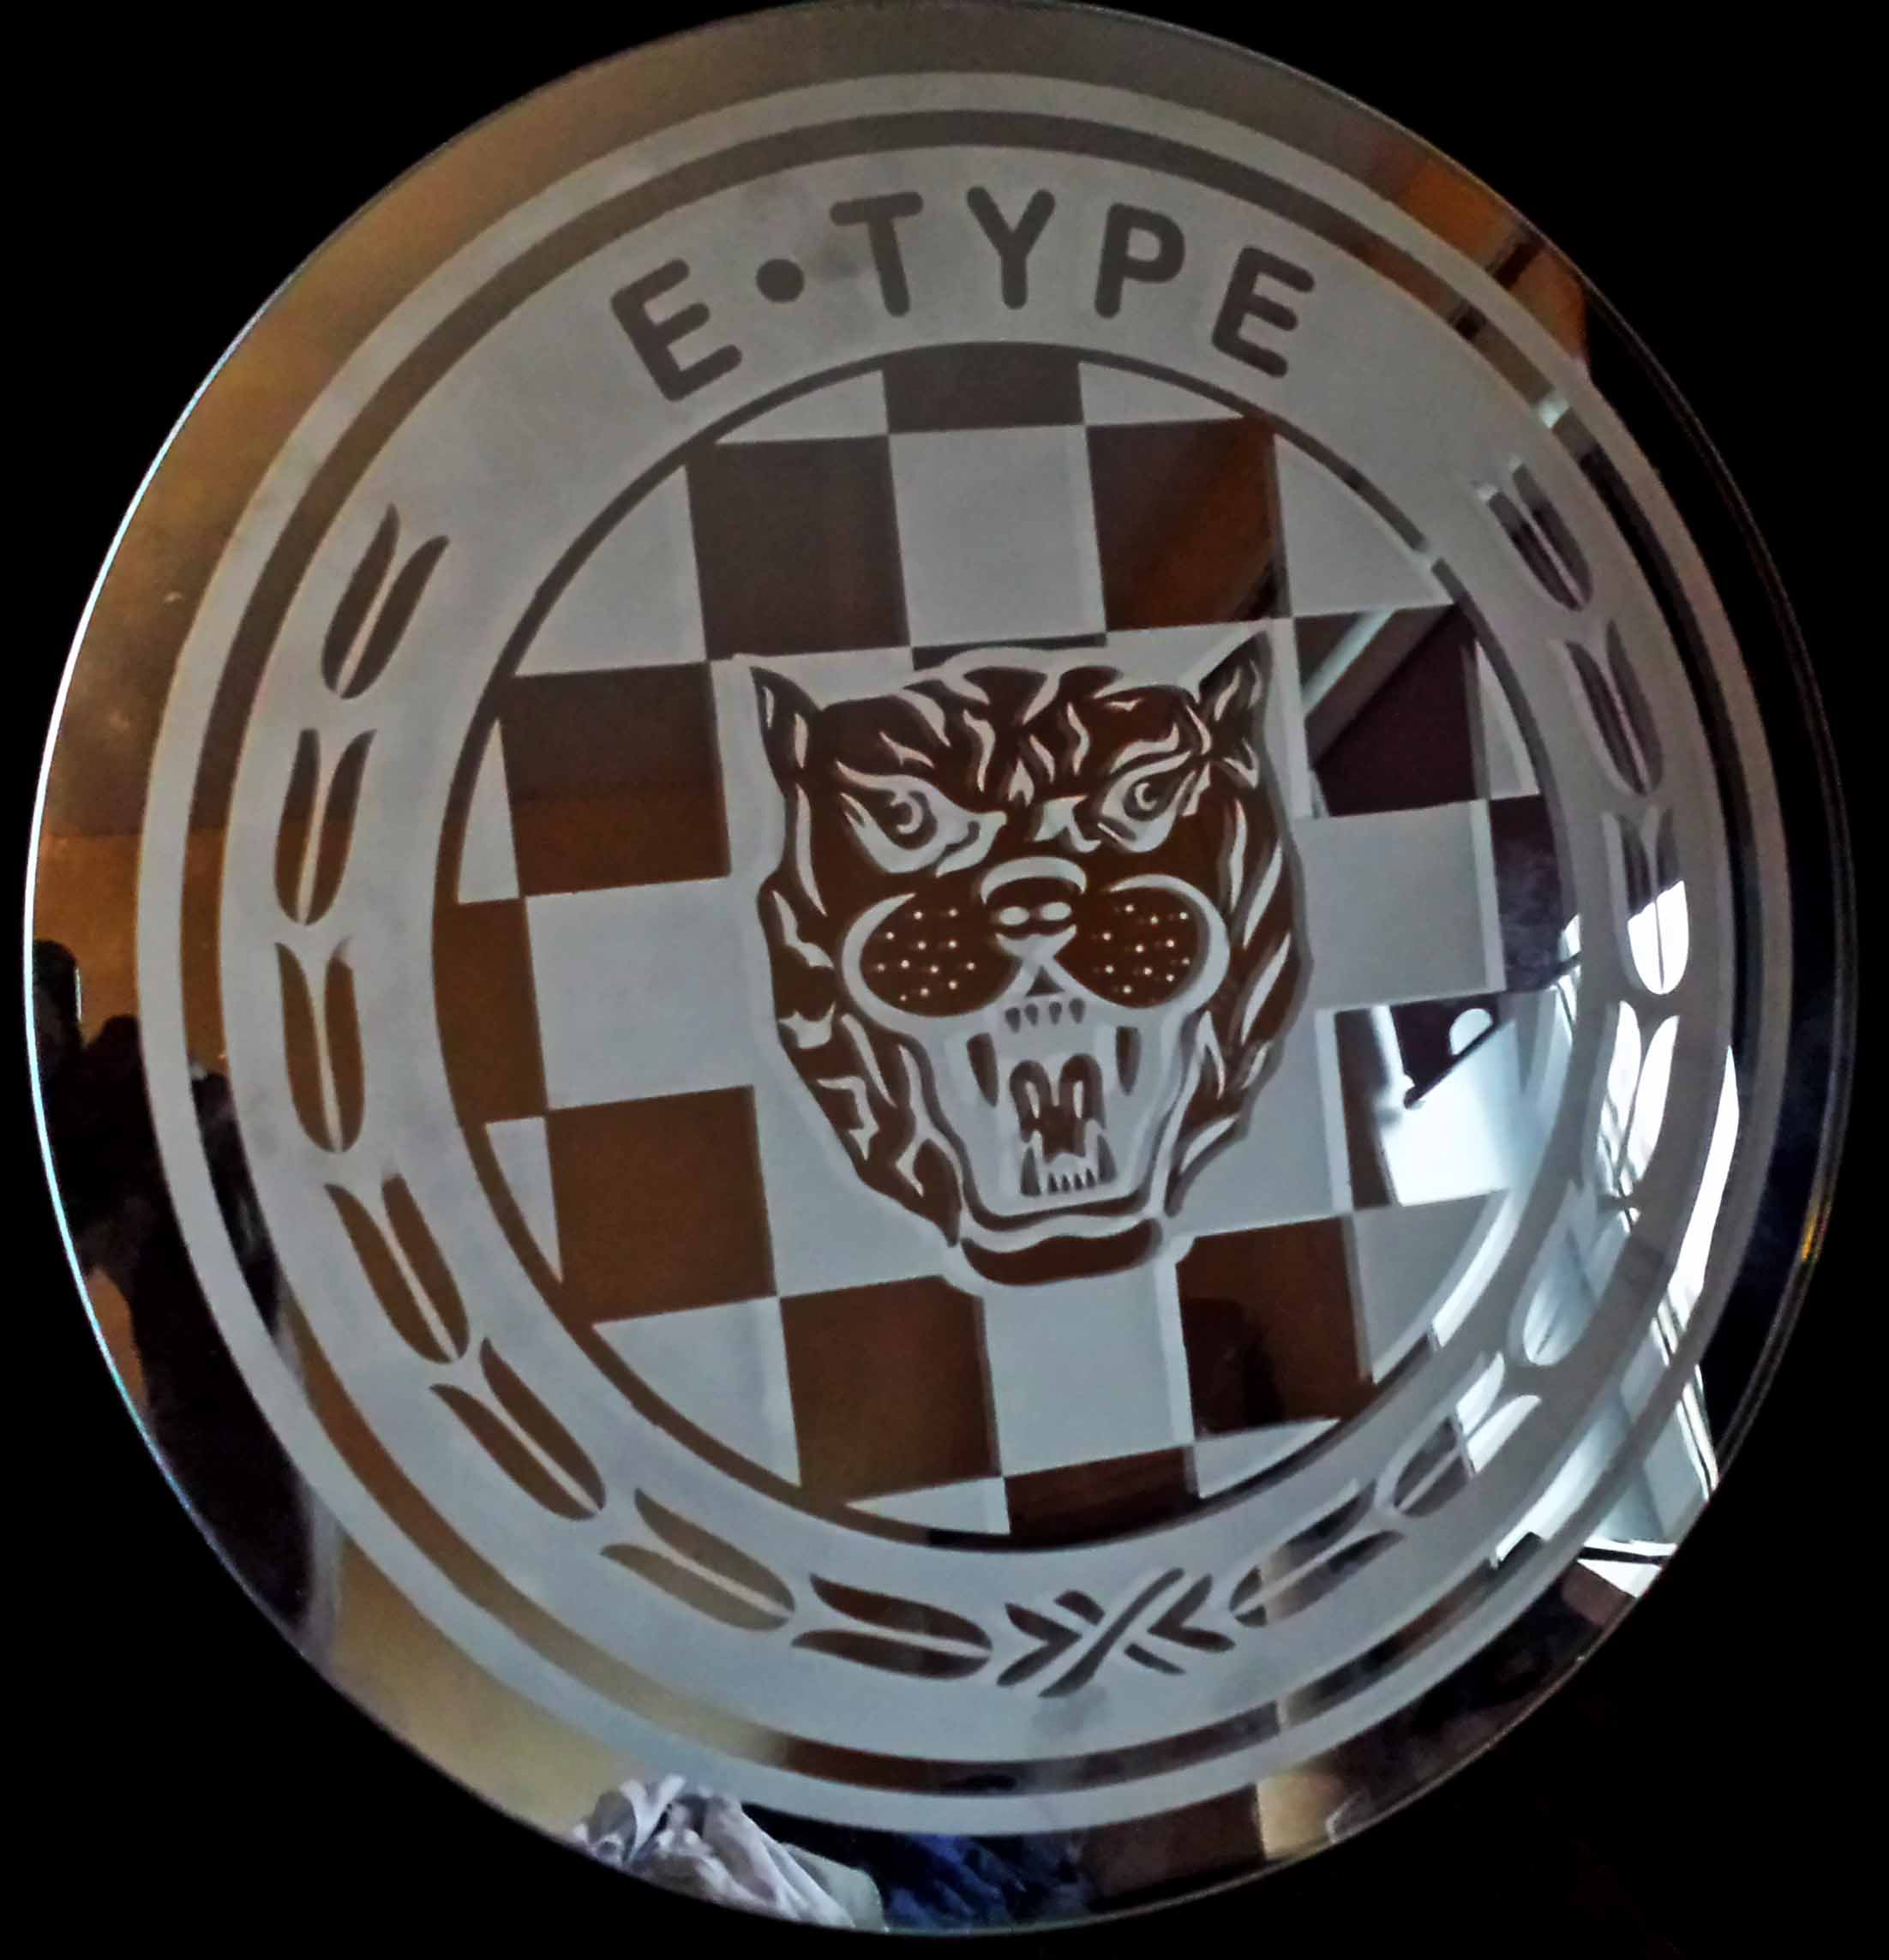 A round piece of safety glass 22 inch in diameter engraved with the E Type Jaguar logo.